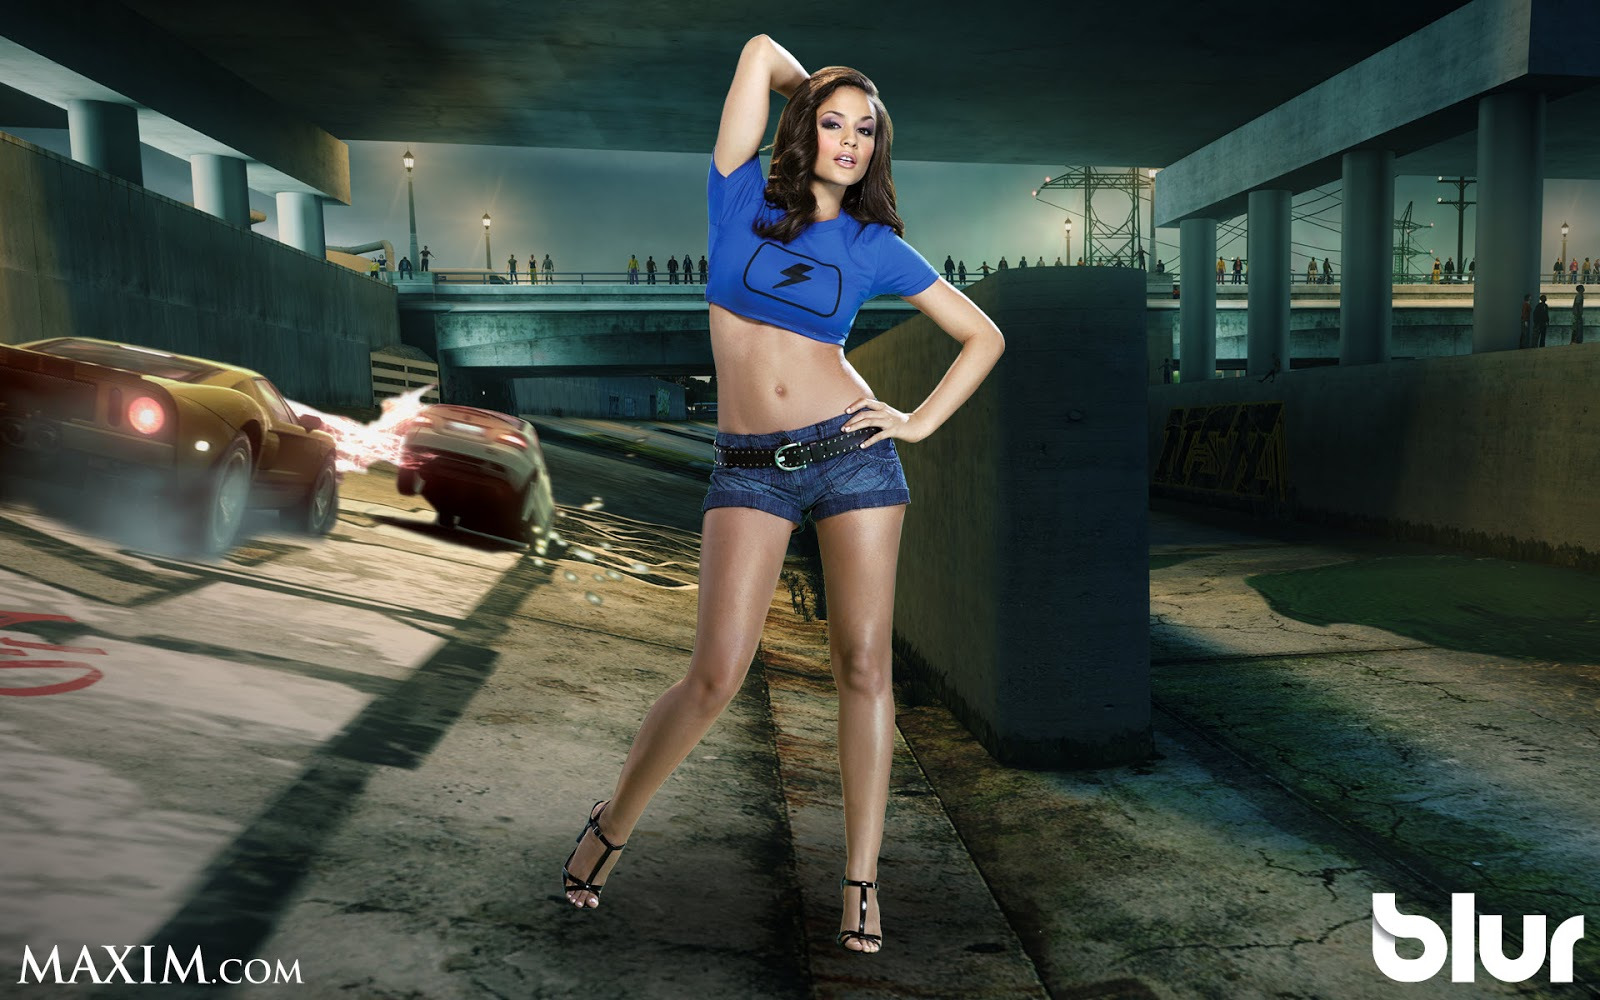 MAXIM Girl for Blur Game game hd wallpapers